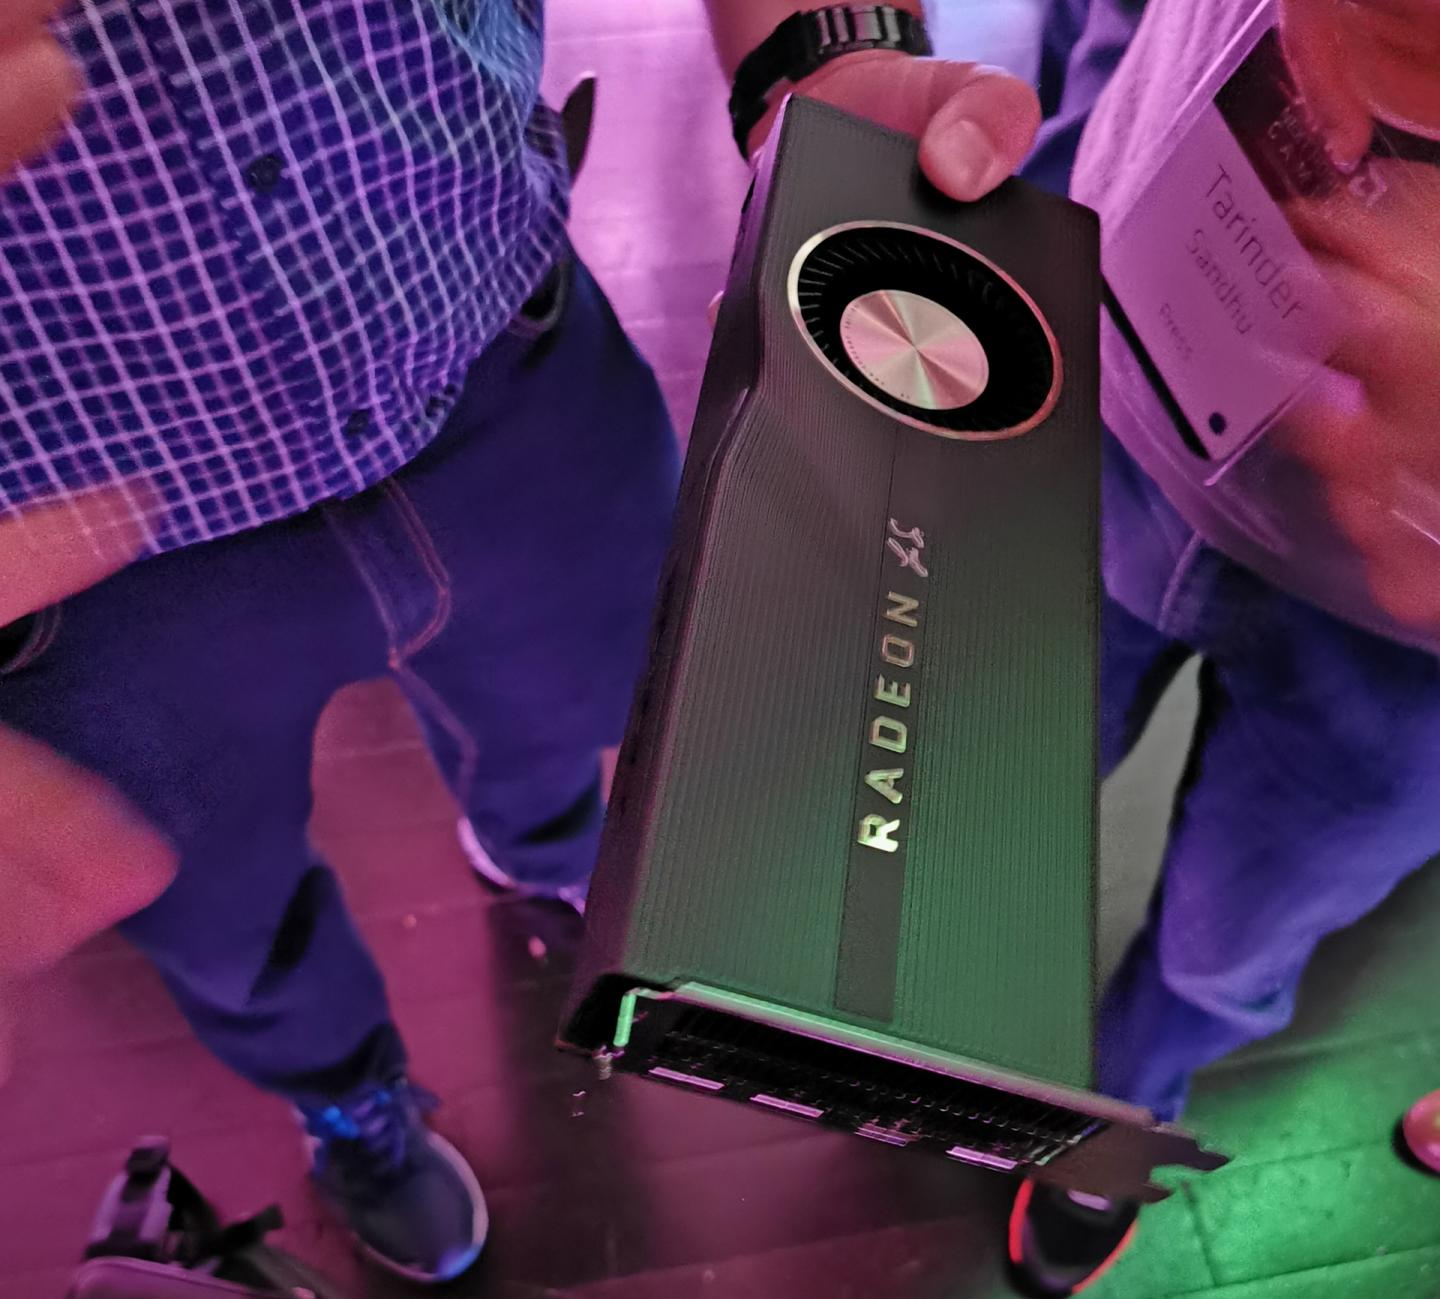 AMD: Radeon RX 5700 XT Will Also Be Released As a Faster